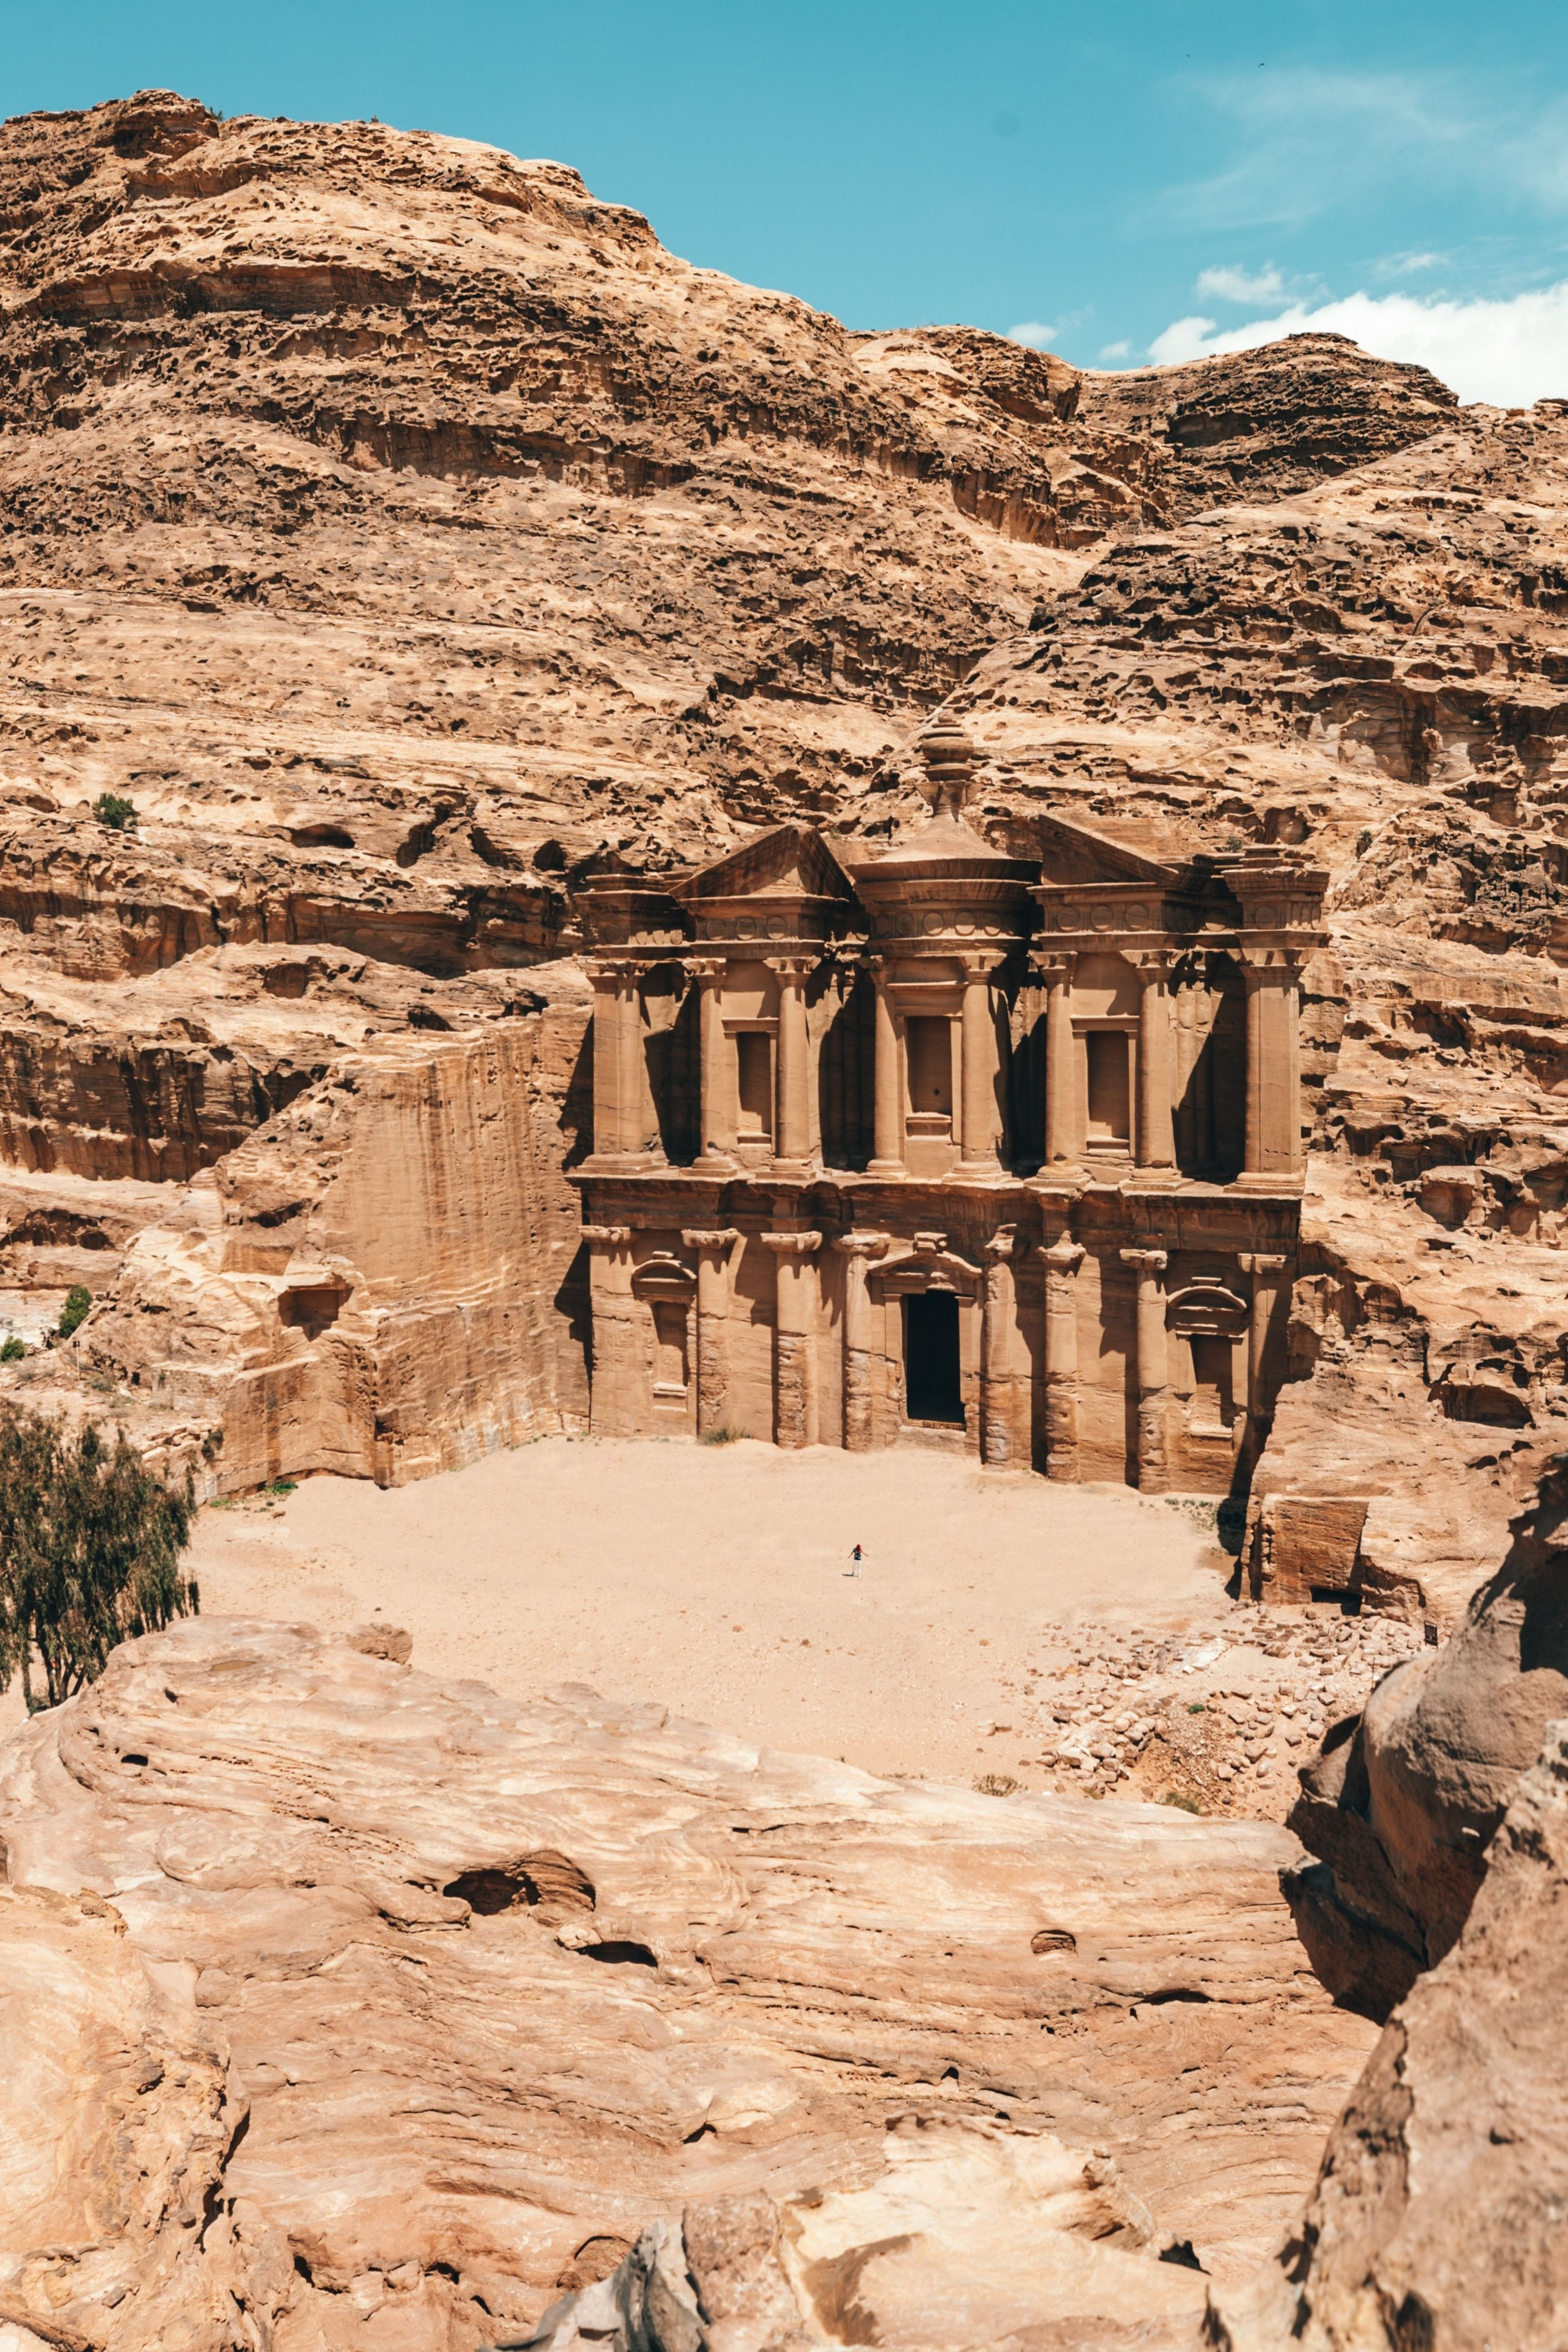 Travel Jordan and Visit historic heritage sites. Petra Temple in Jordan is a must visit destination in Middle East. Tips to travel Jordan, Juresalem Israel and follow route of Indiana Jones adventure. Visit beautiful cities and collect ideas on places to visit, architecture and packing lists, and nature parks before going to Jordan, Petra Temple.